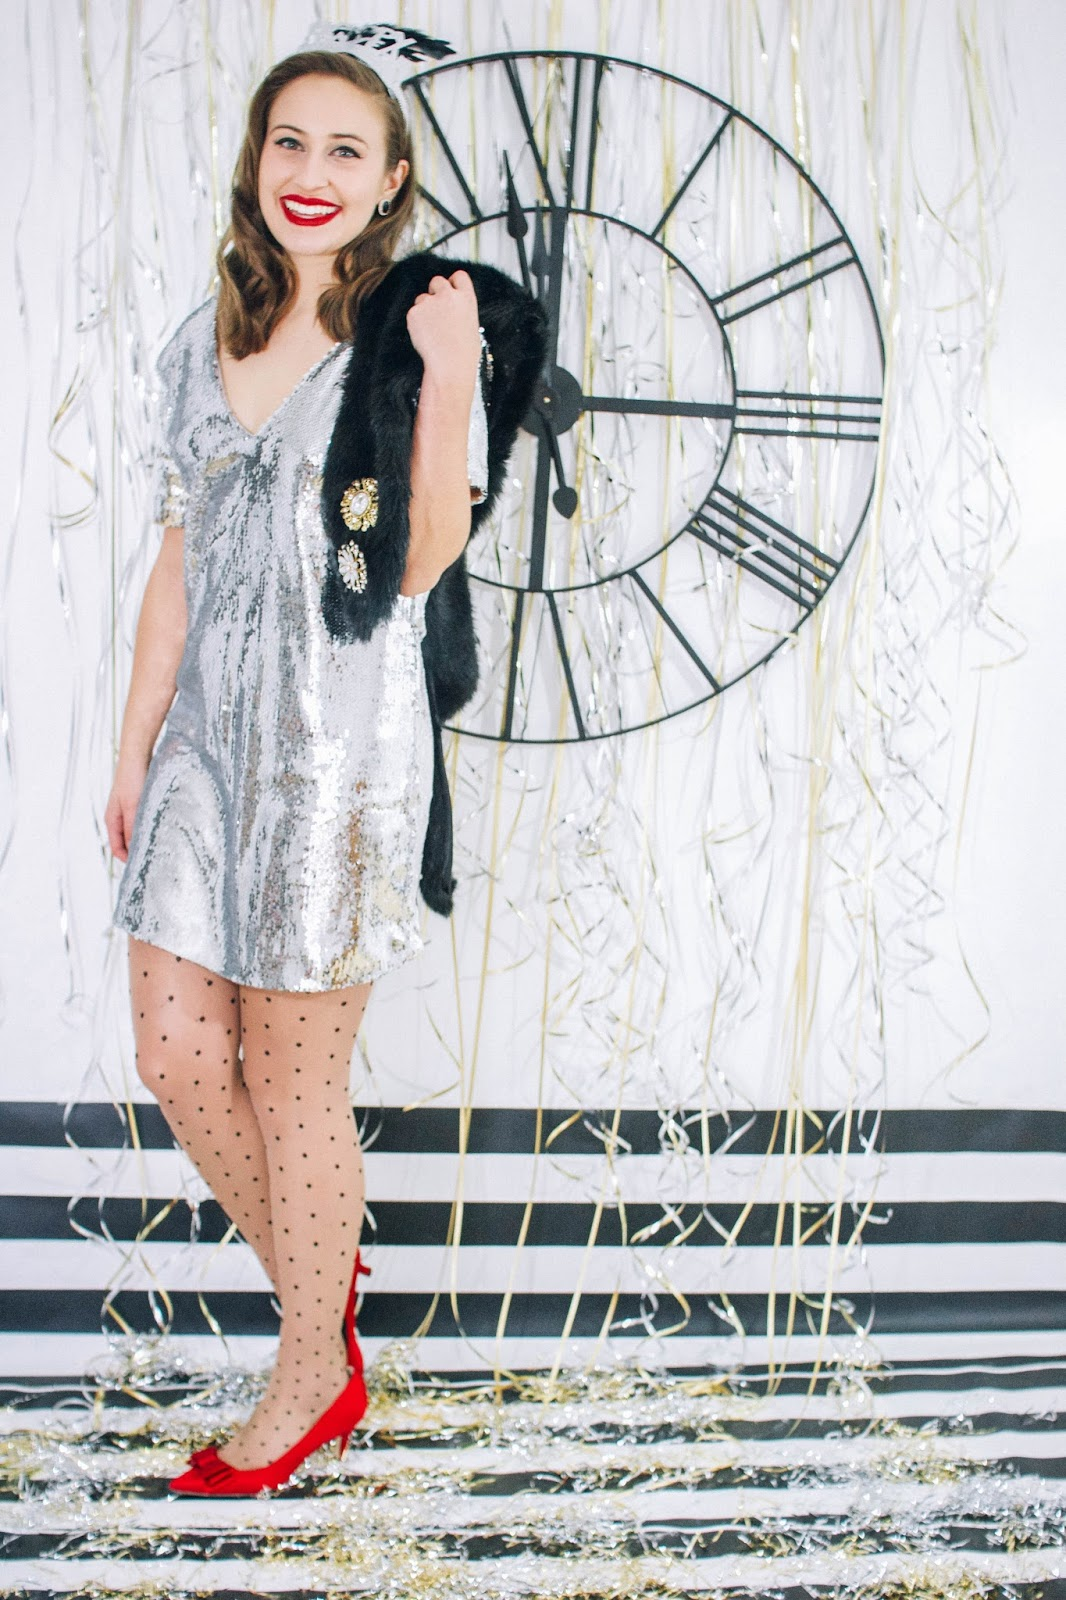 vintage style, classic style, holiday outfit, new years eve outfit, new years eve dress, holiday party wear, silver sequined dress, shift dress, kitten heels, screenwriting, old hollywood glam, old hollywood, fashion,